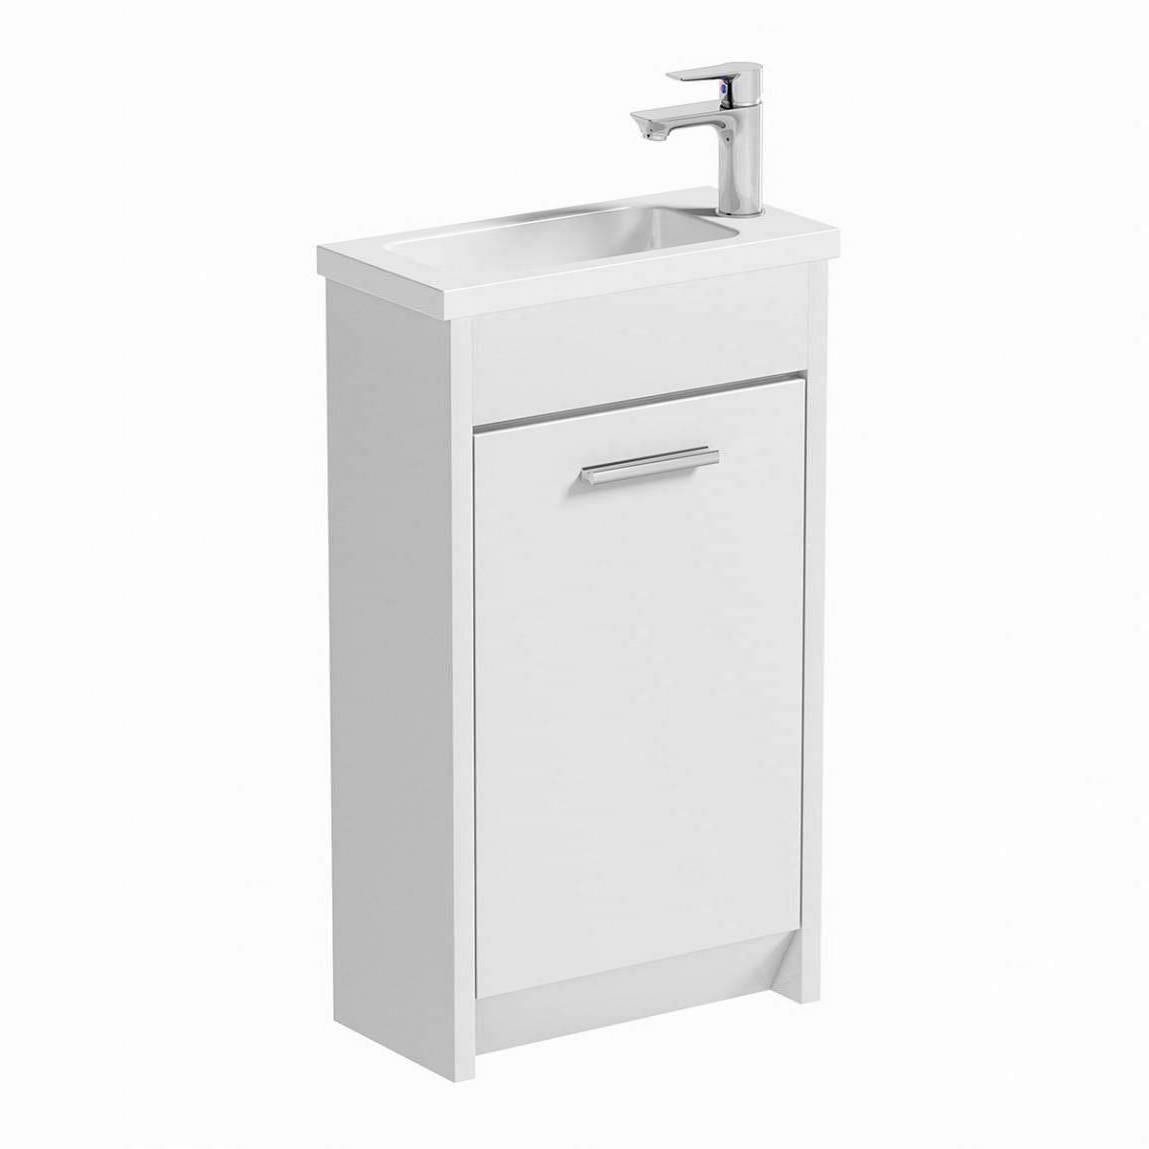 Clarity white cloakroom unit with basin 450mm